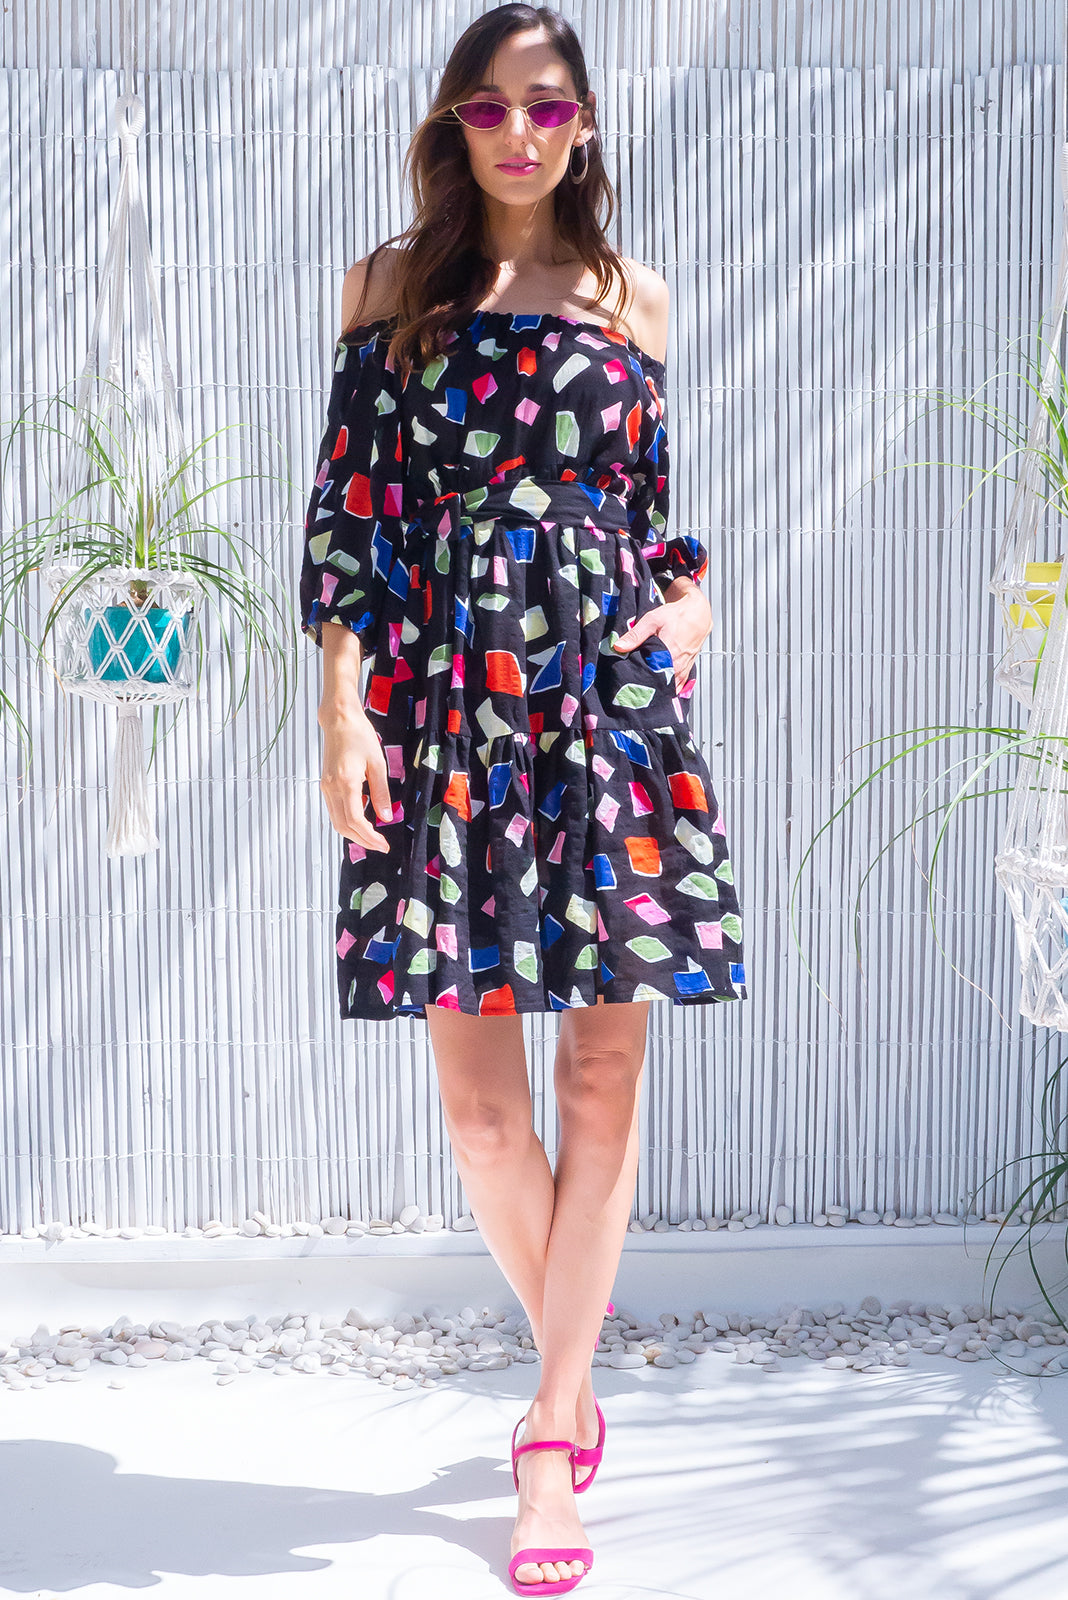 The Lulu Babe Calder Noir Swing Mini Dress now comes in fun print, featuring small side pocket, fabric belt included to cinch in waist, elasticated sleeve cuffs for puff effect and 100% cotton in black base with multicoloured shapes print.